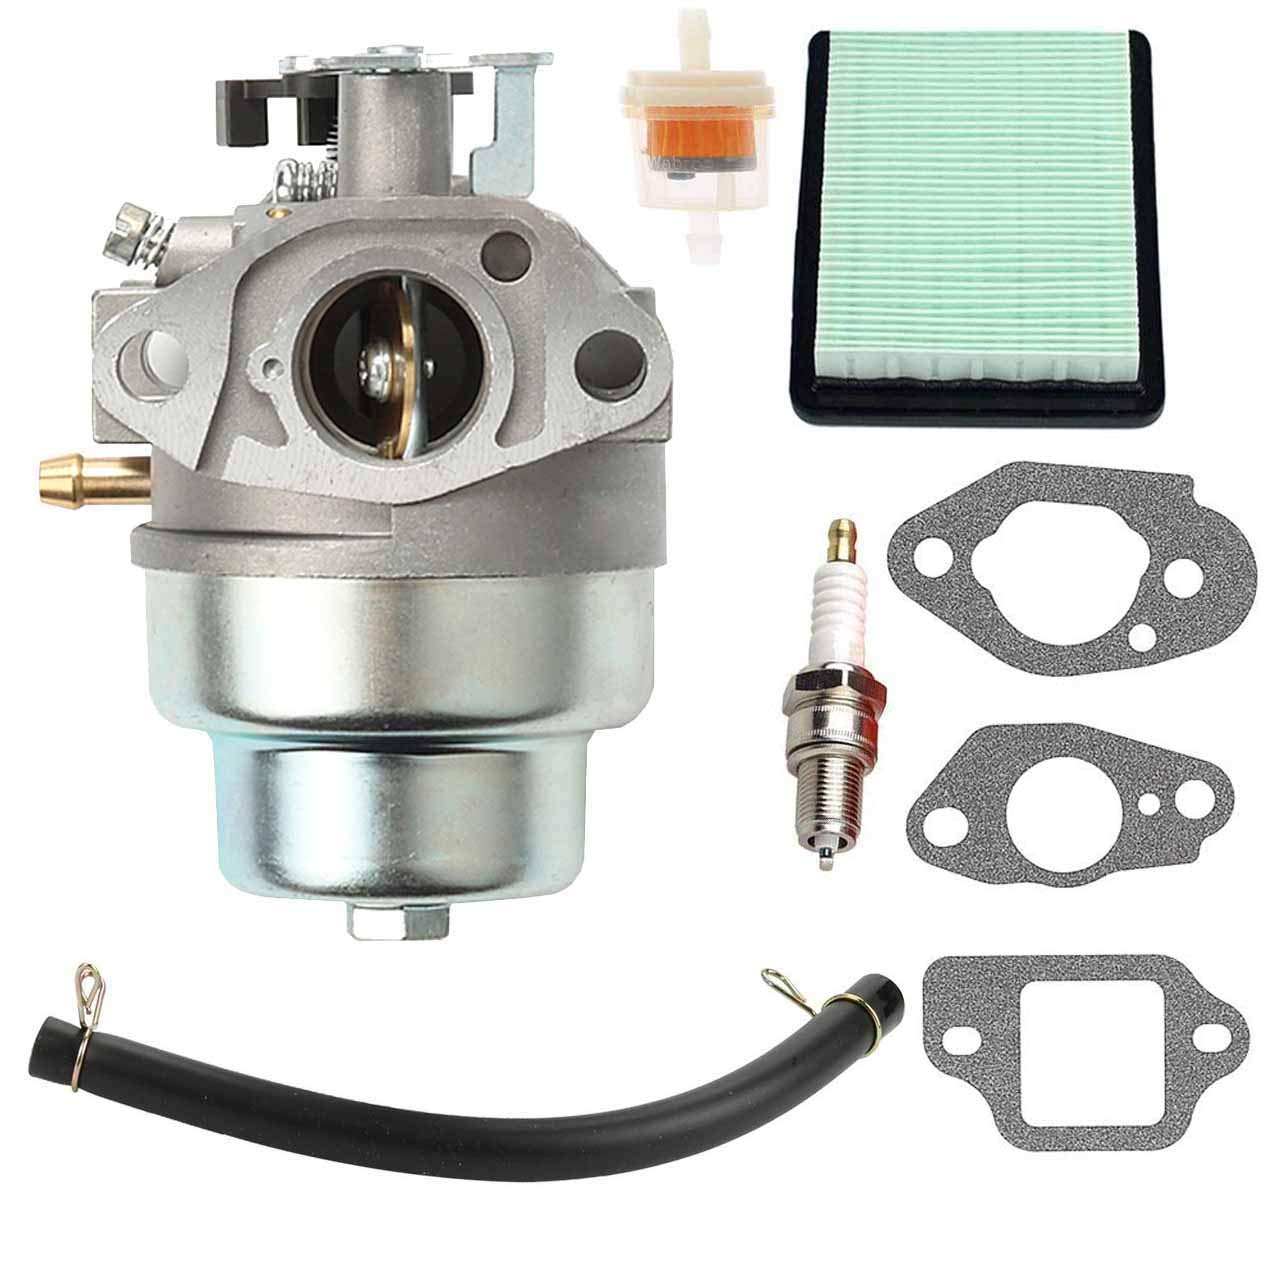 New GCV160 Carburetor + Air Filter Spark Plug for Honda GCV160 Engine HRB216 HRR216 HRS216 HRT216 HRZ216 Lawn Mower by FYIYI